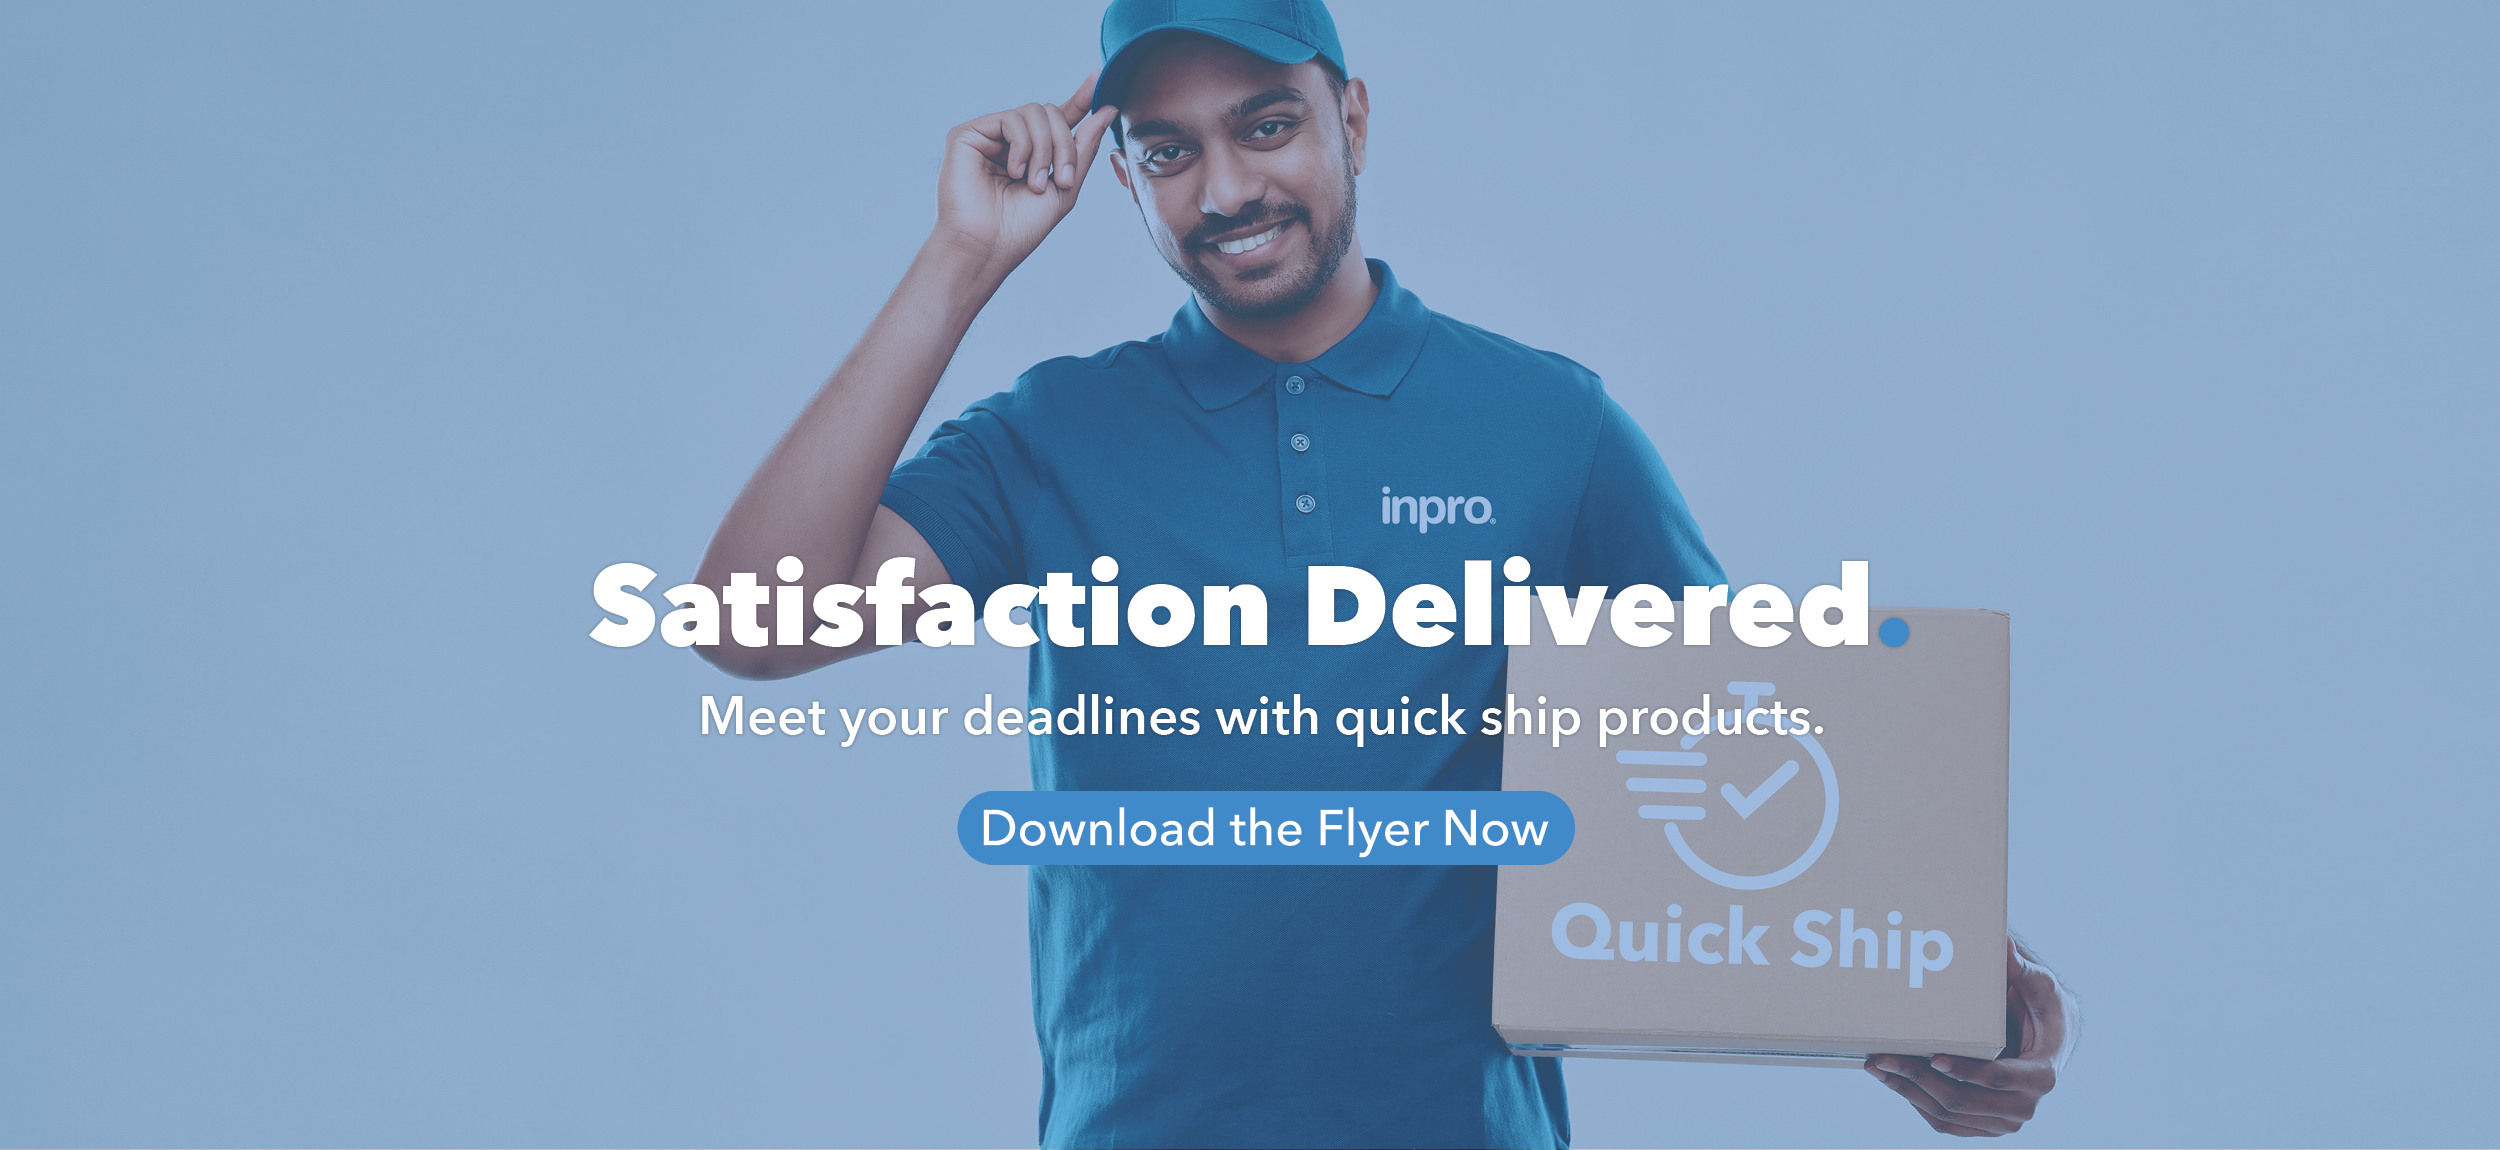 Delivery man wearing a blue polo with the Inpro logo holding a box that says Quick Ship